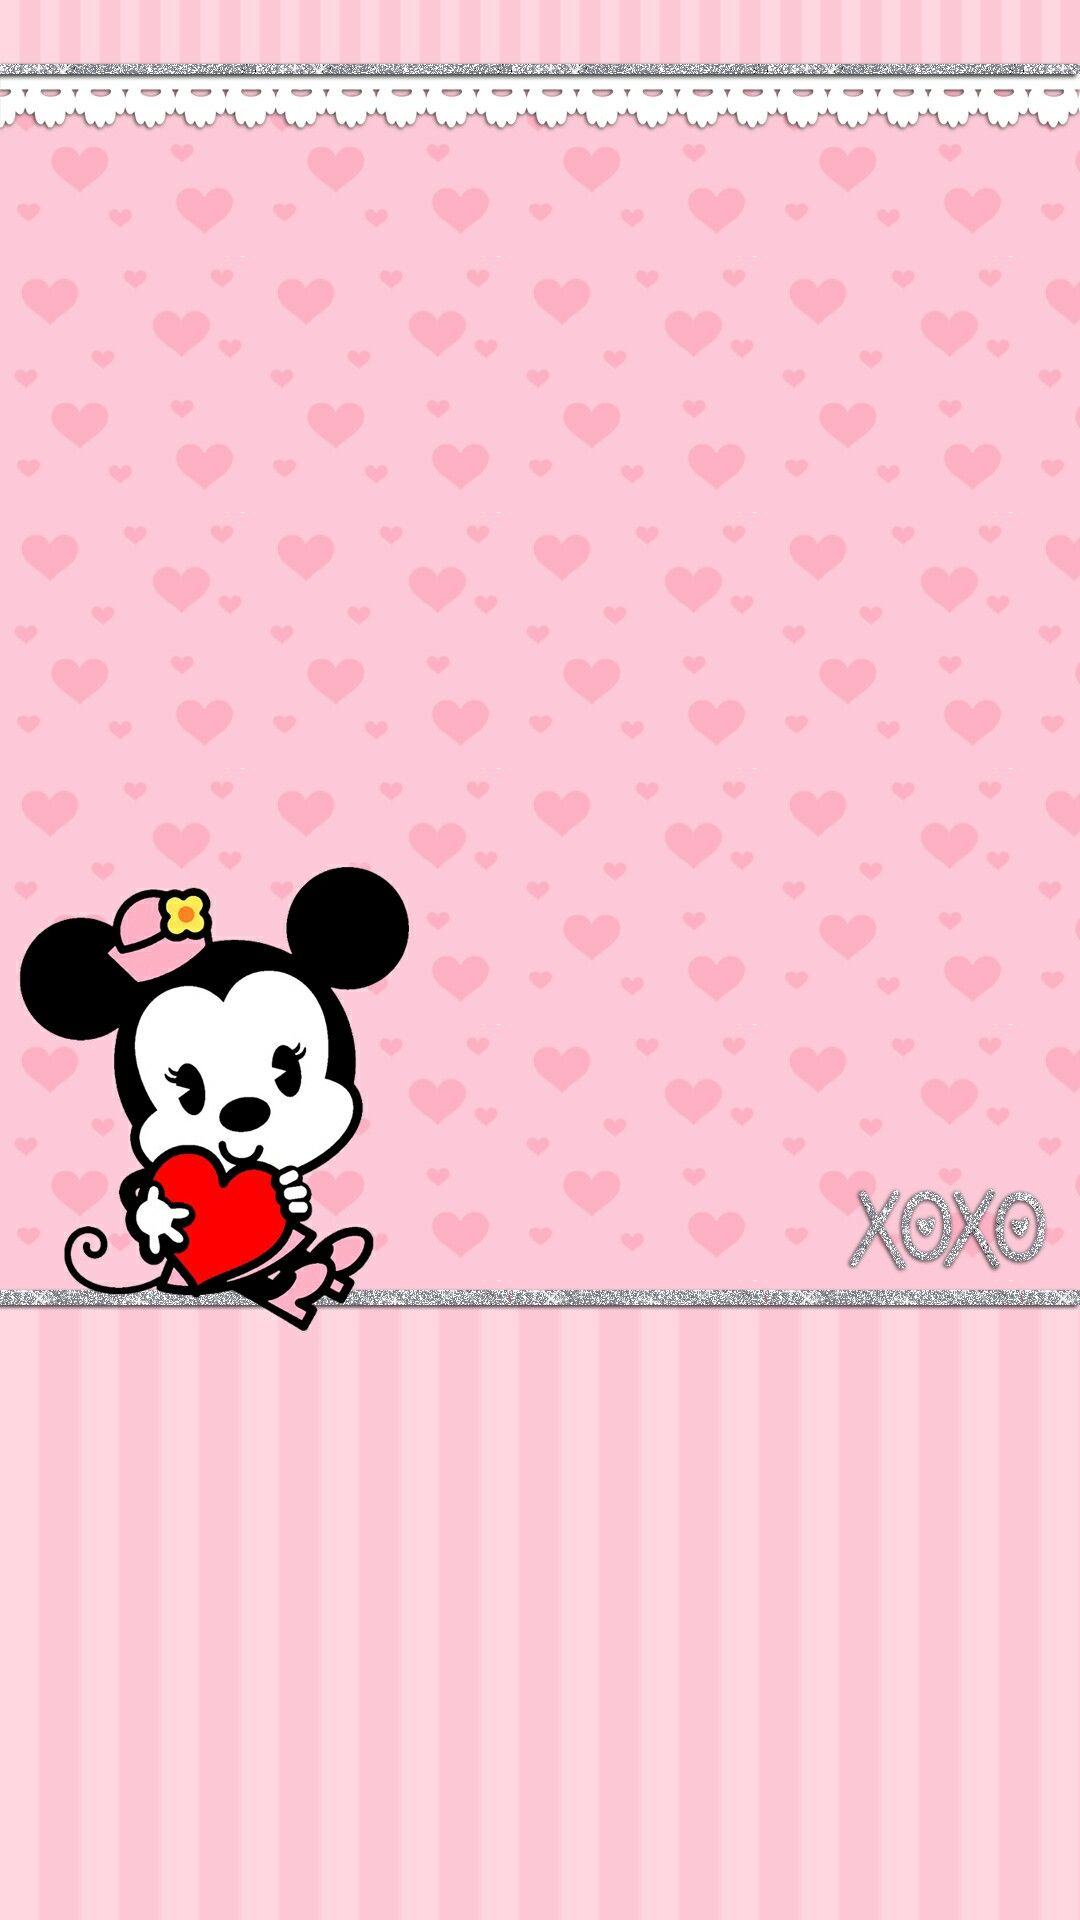 Wallpaper iphone minnie mouse - Iphone Wall Mm Love Tjn